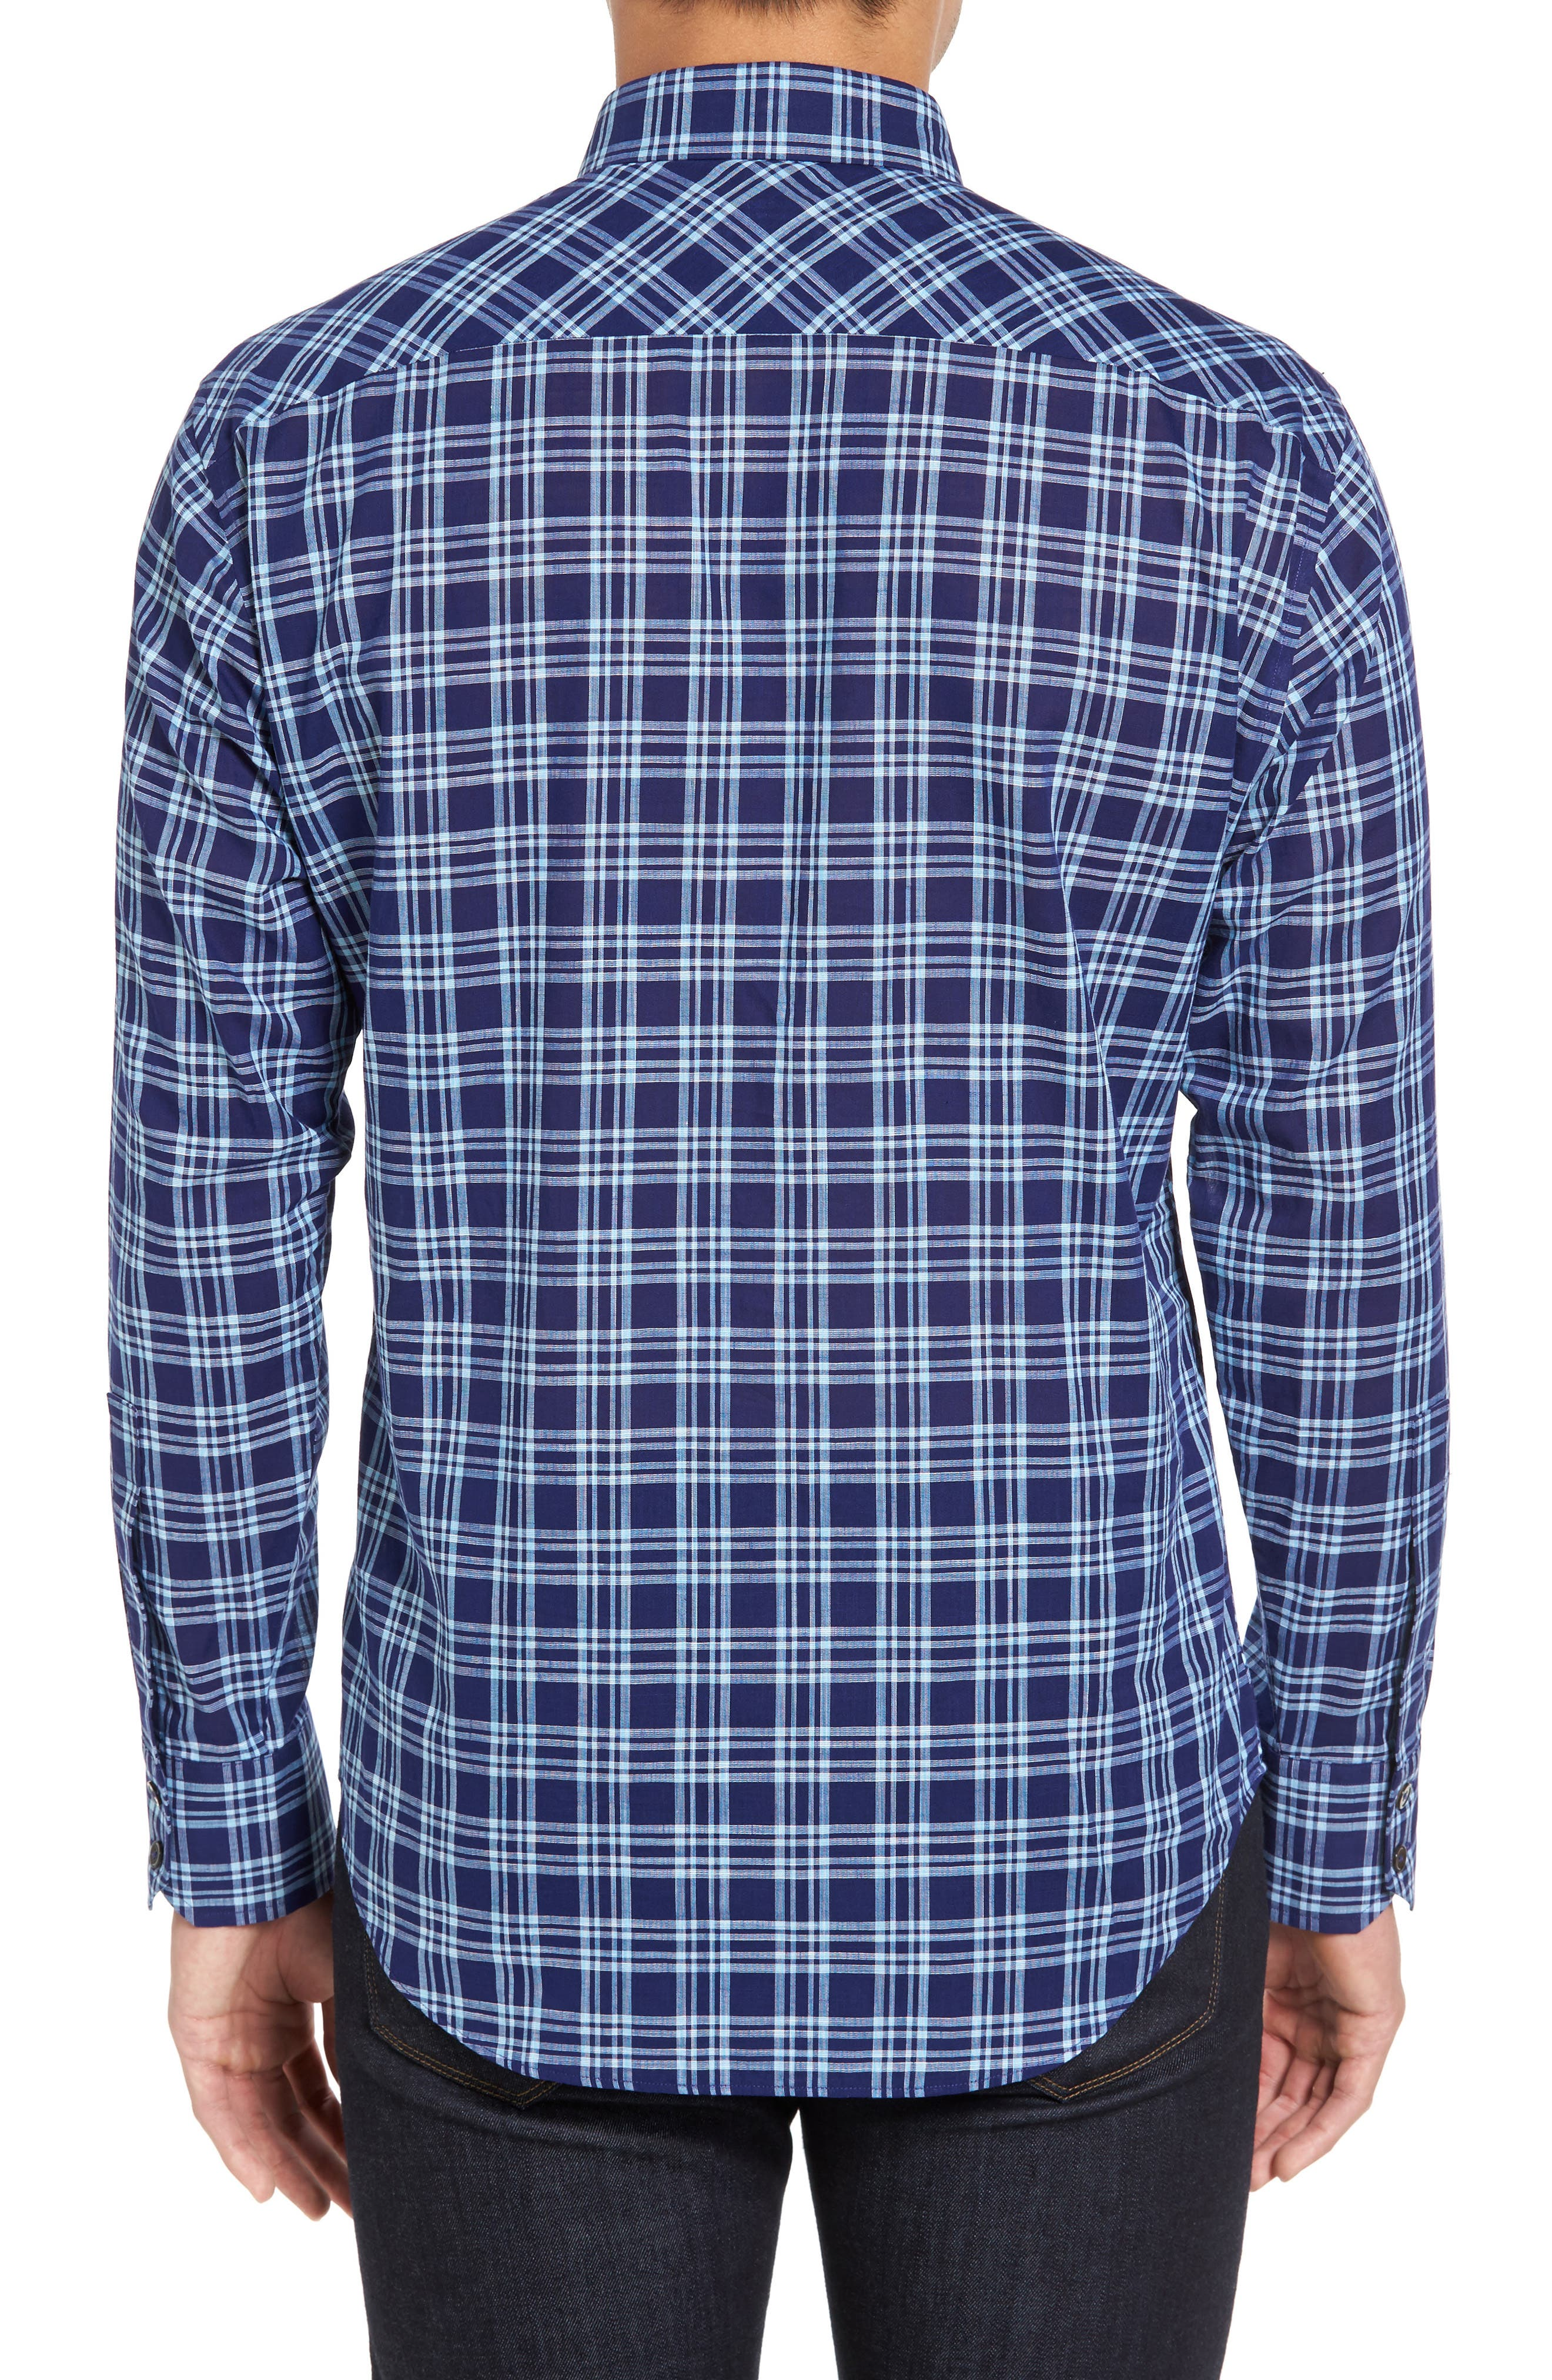 Alternate Image 2  - Zachary Prell Leventhal Trim Fit Plaid Sport Shirt